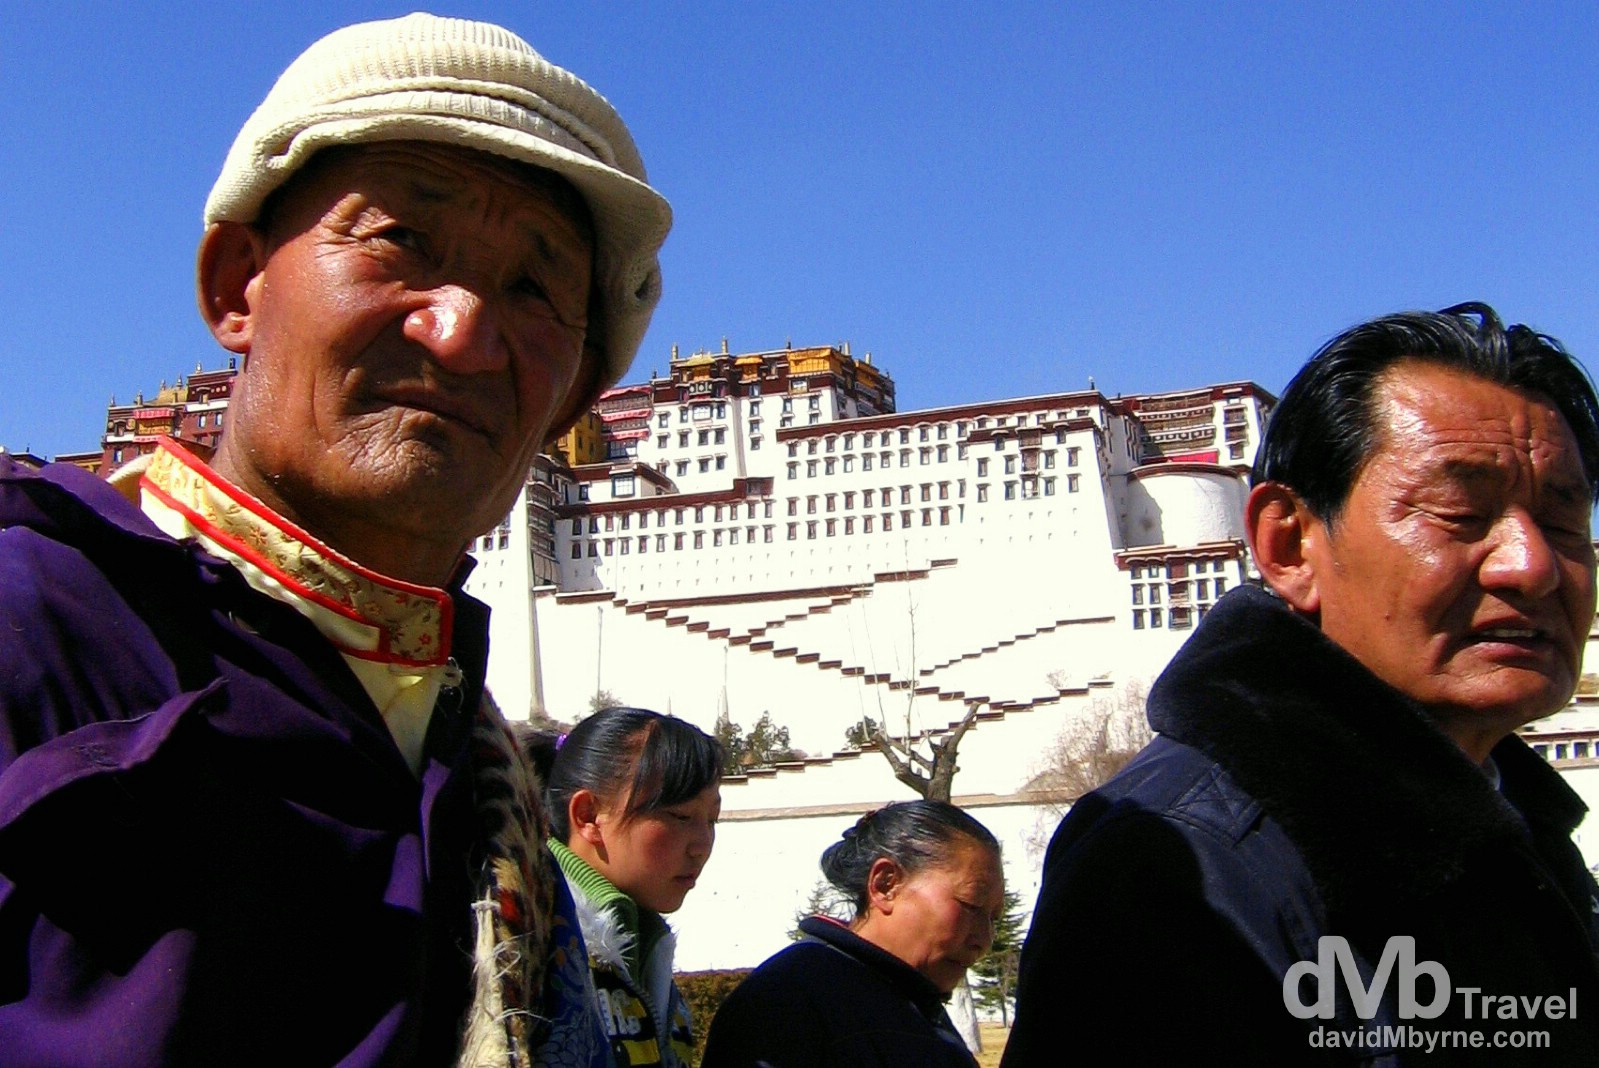 Fronting the Potala Palace in Lhasa, Tibet. February 25th, 2008.